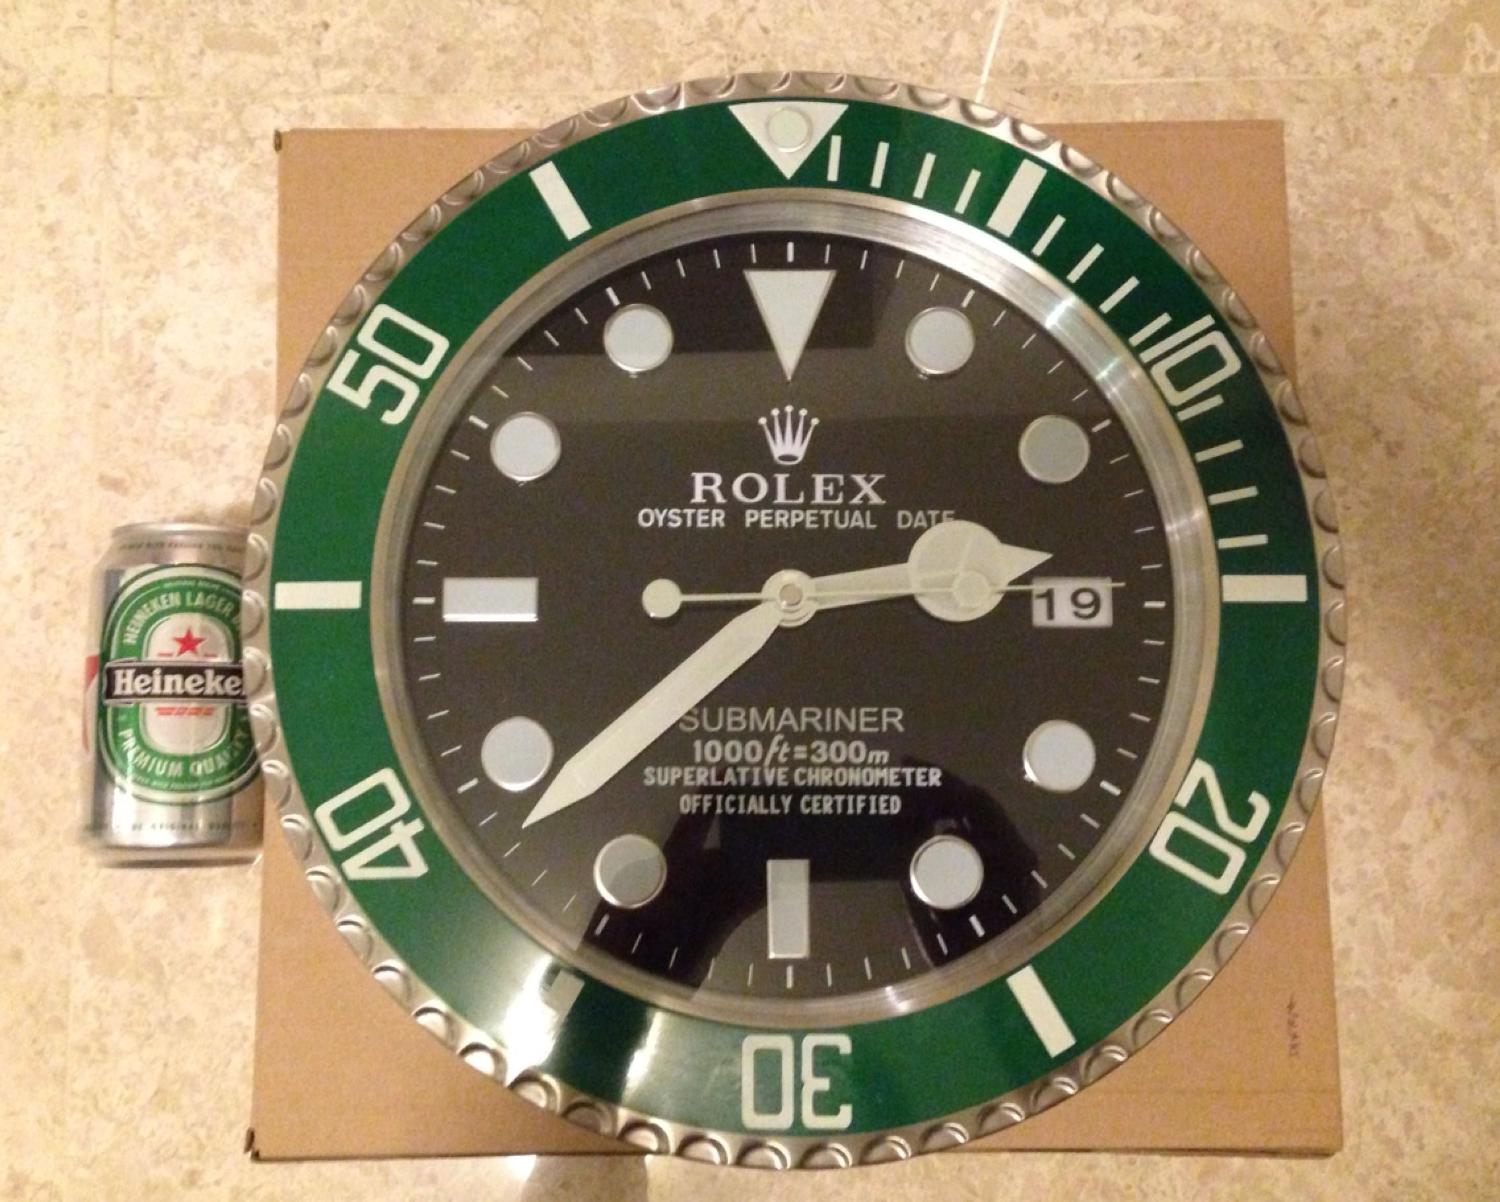 Best new rolex submariner green hulk 34cm wall clock for sale in best new rolex submariner green hulk 34cm wall clock for sale in richmond hill ontario for 2018 amipublicfo Gallery